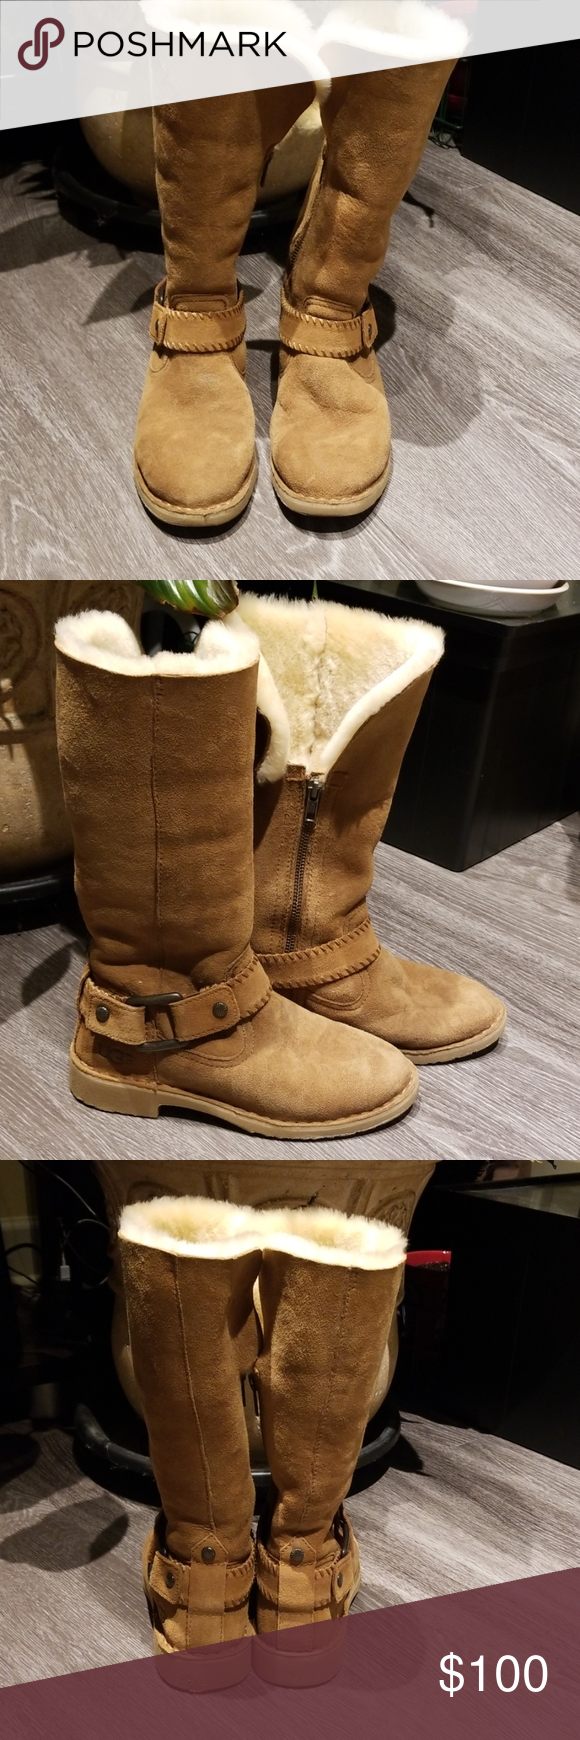 buy \u003e ugg boots size 5 uk, Up to 72% OFF